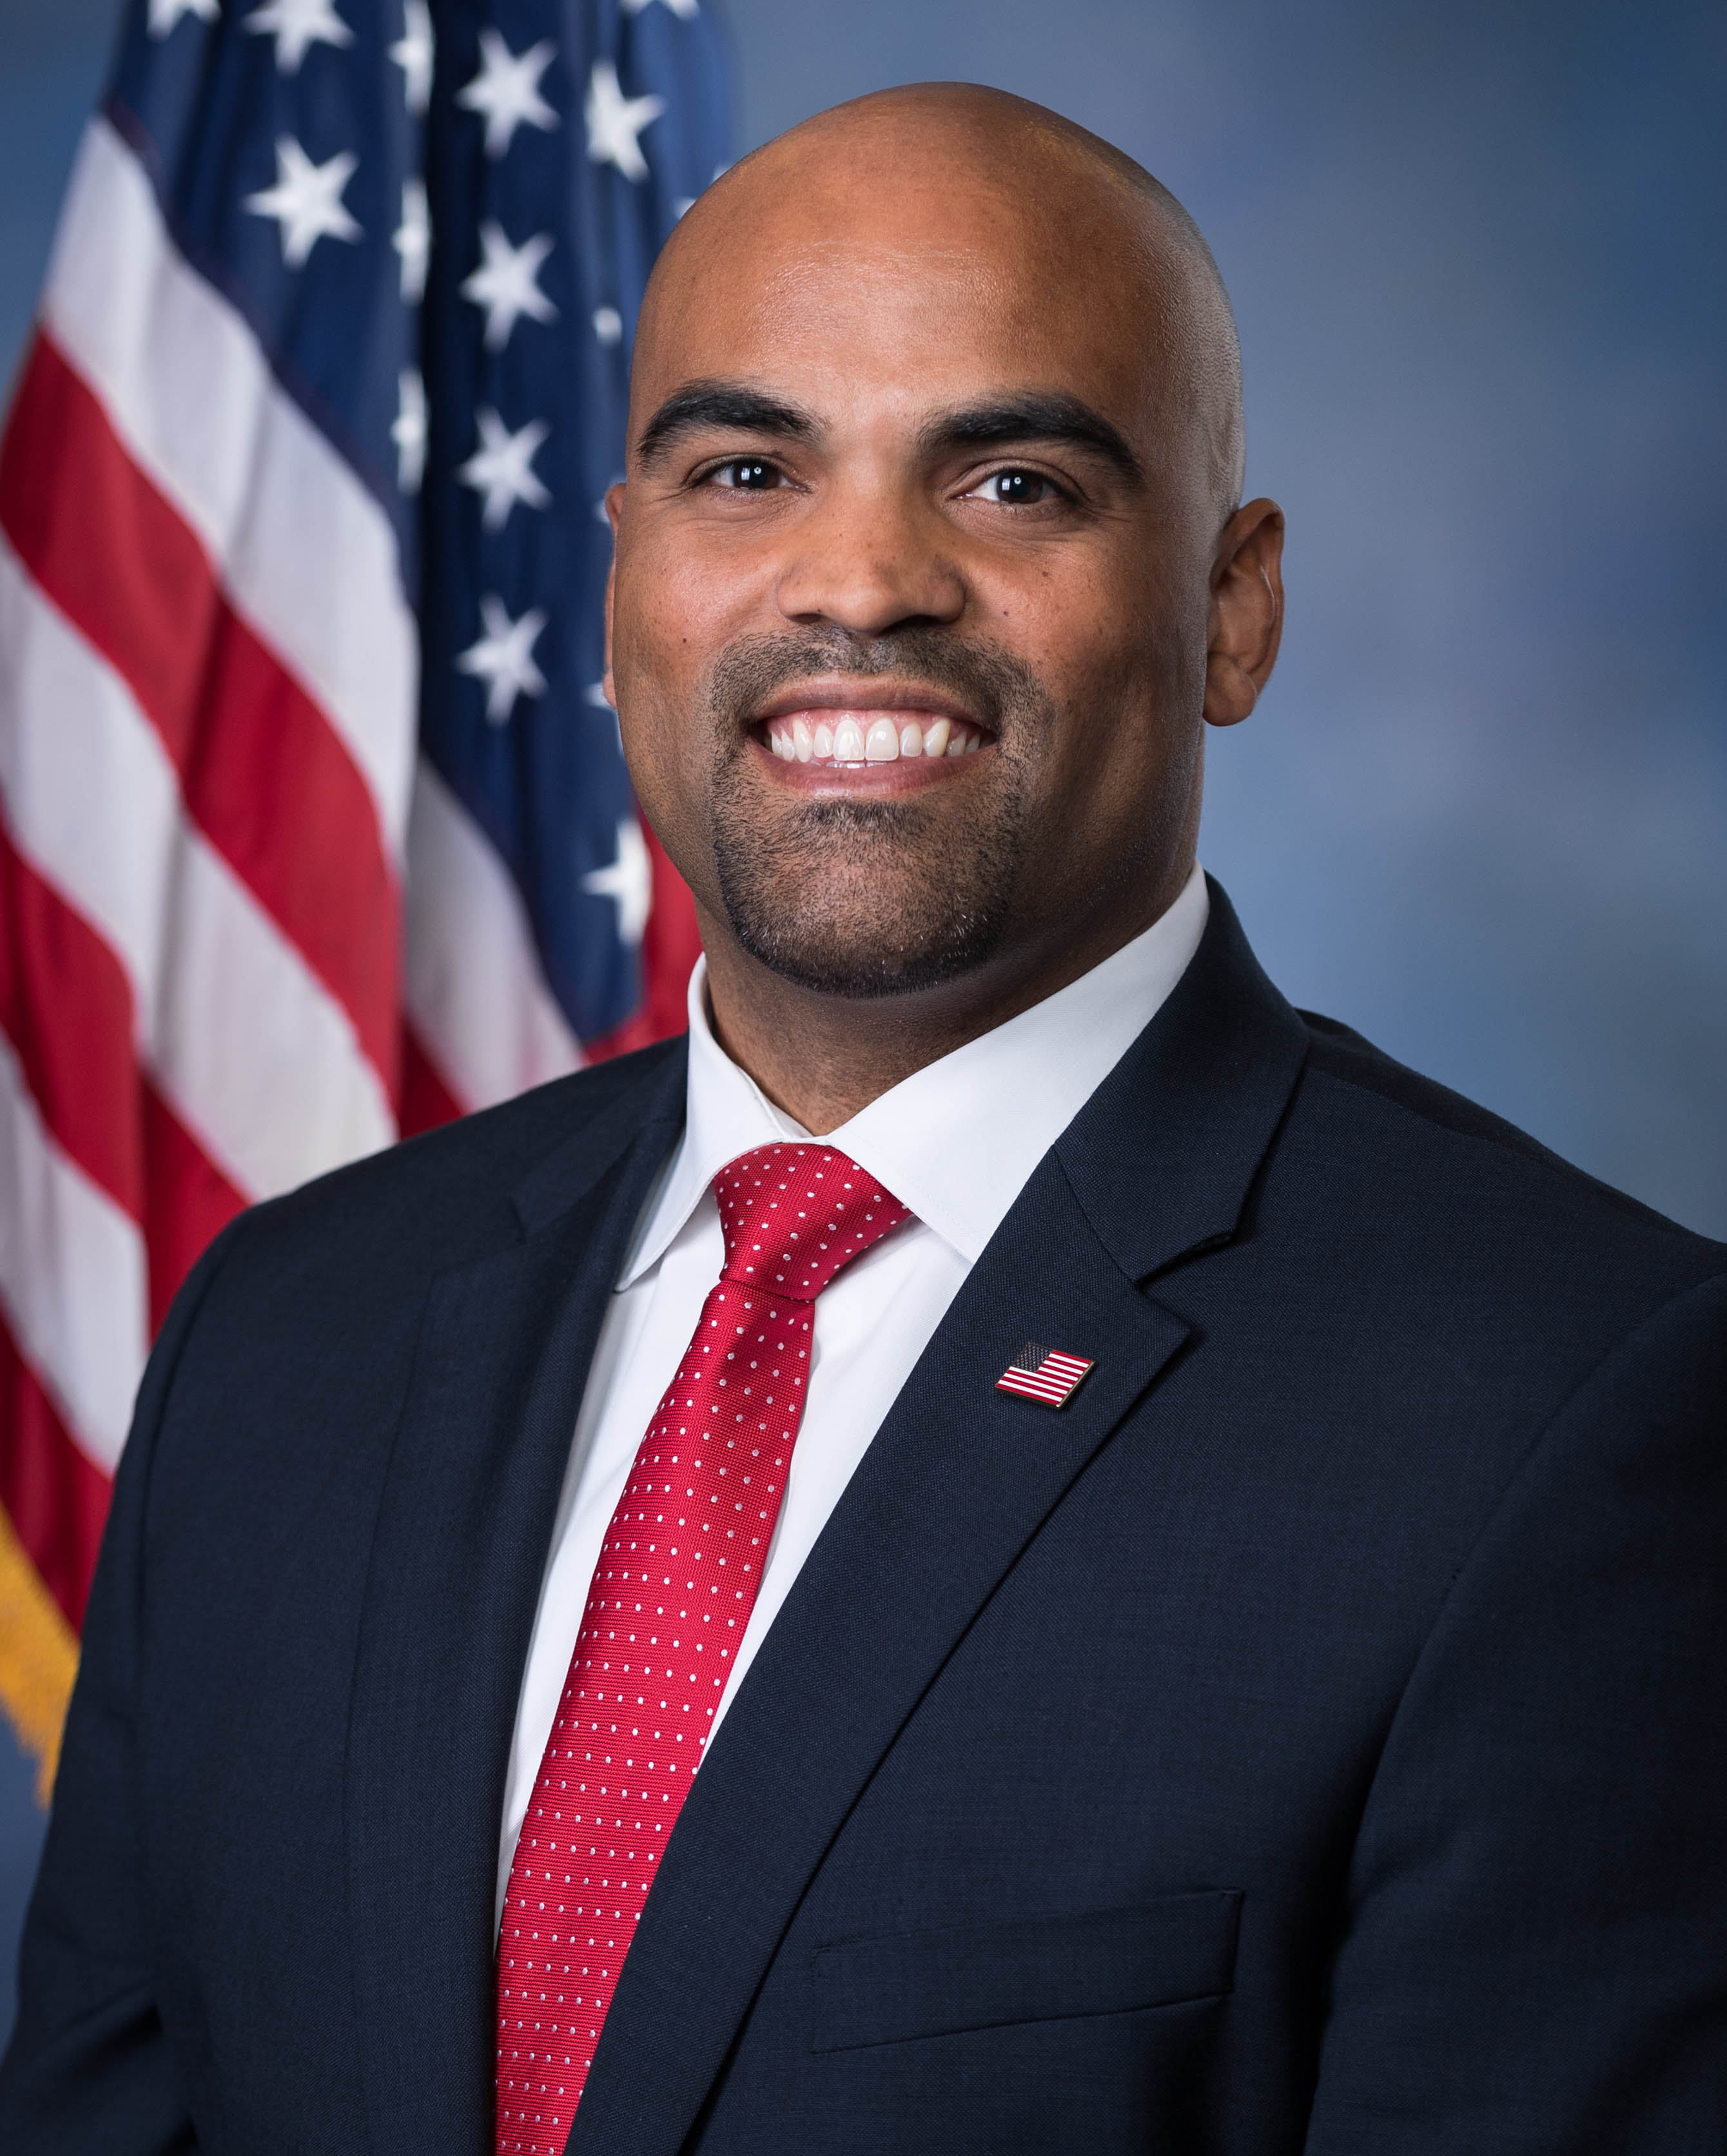 Official 2018 portrait of U.S. Rep. Colin Allred_D-TX